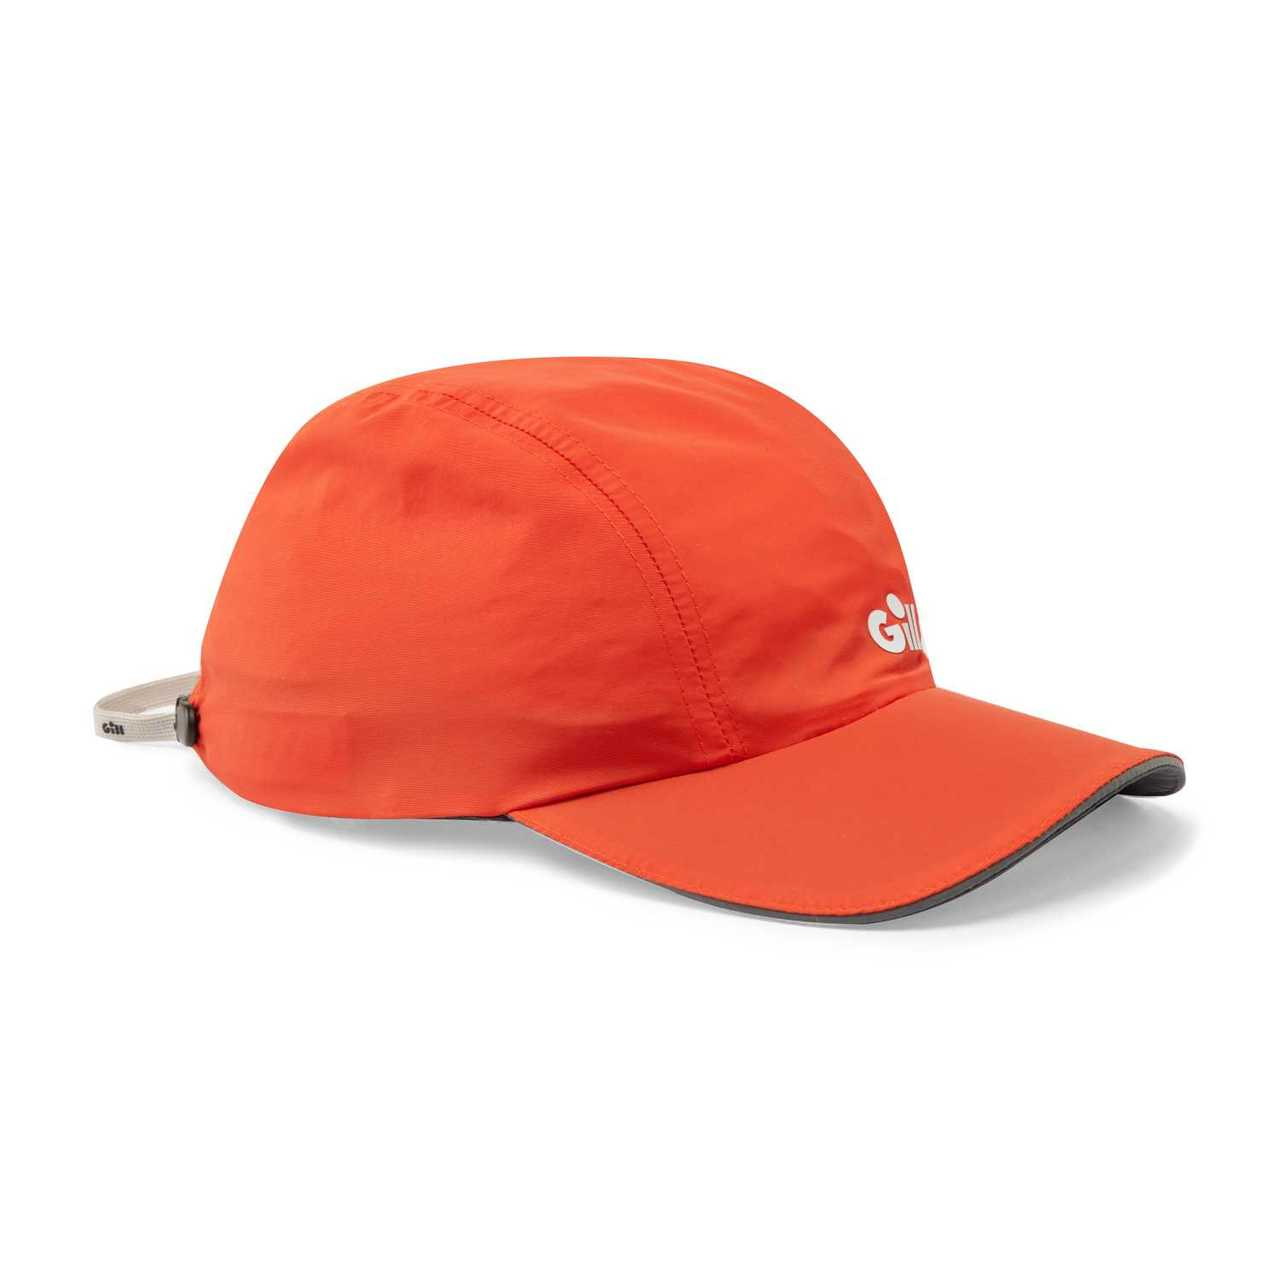 Gill Regatta Sailing Cap 146 Orange